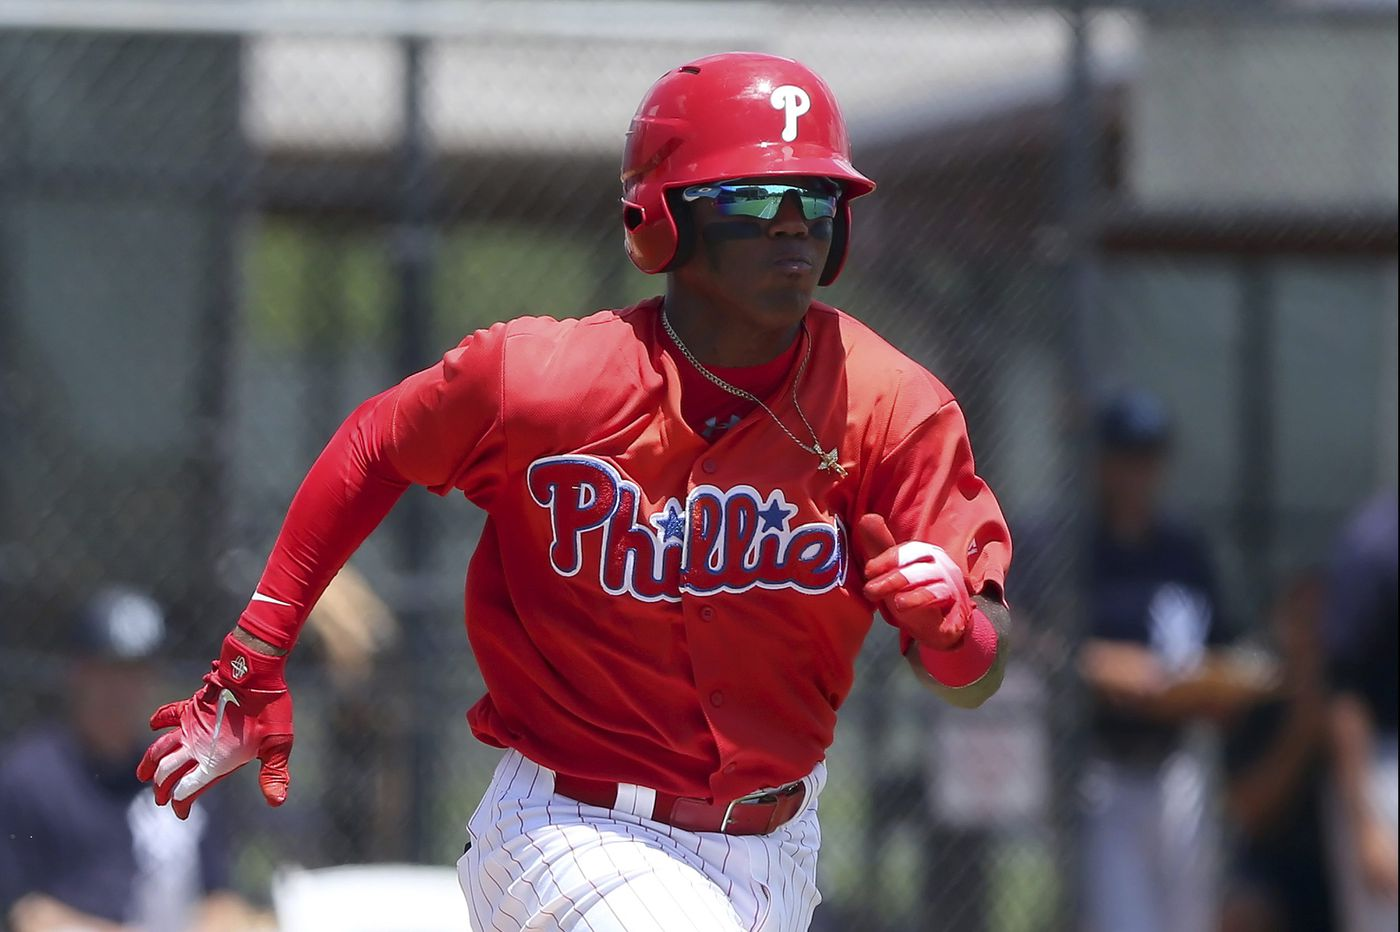 Luis Garcia, 17-year-old shortstop, is Phillies' most exciting infield prospect   Minor league analysis